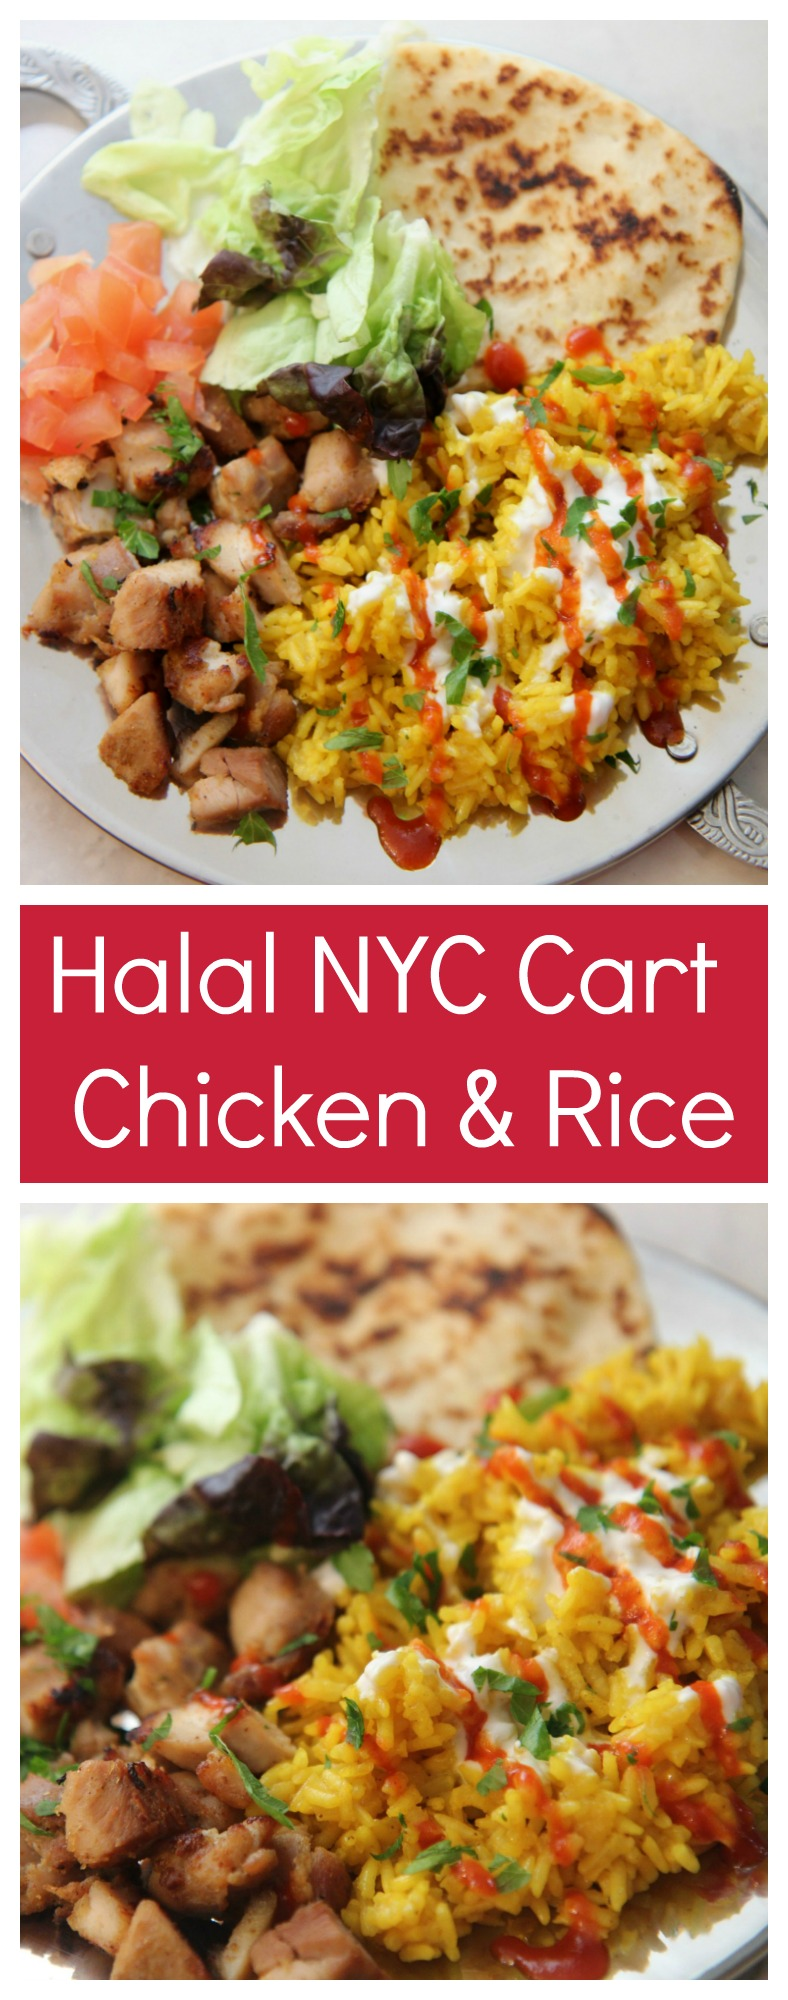 This Halal NYC Cart Chicken and Rice recipe can be found at cookedbyjulie.com